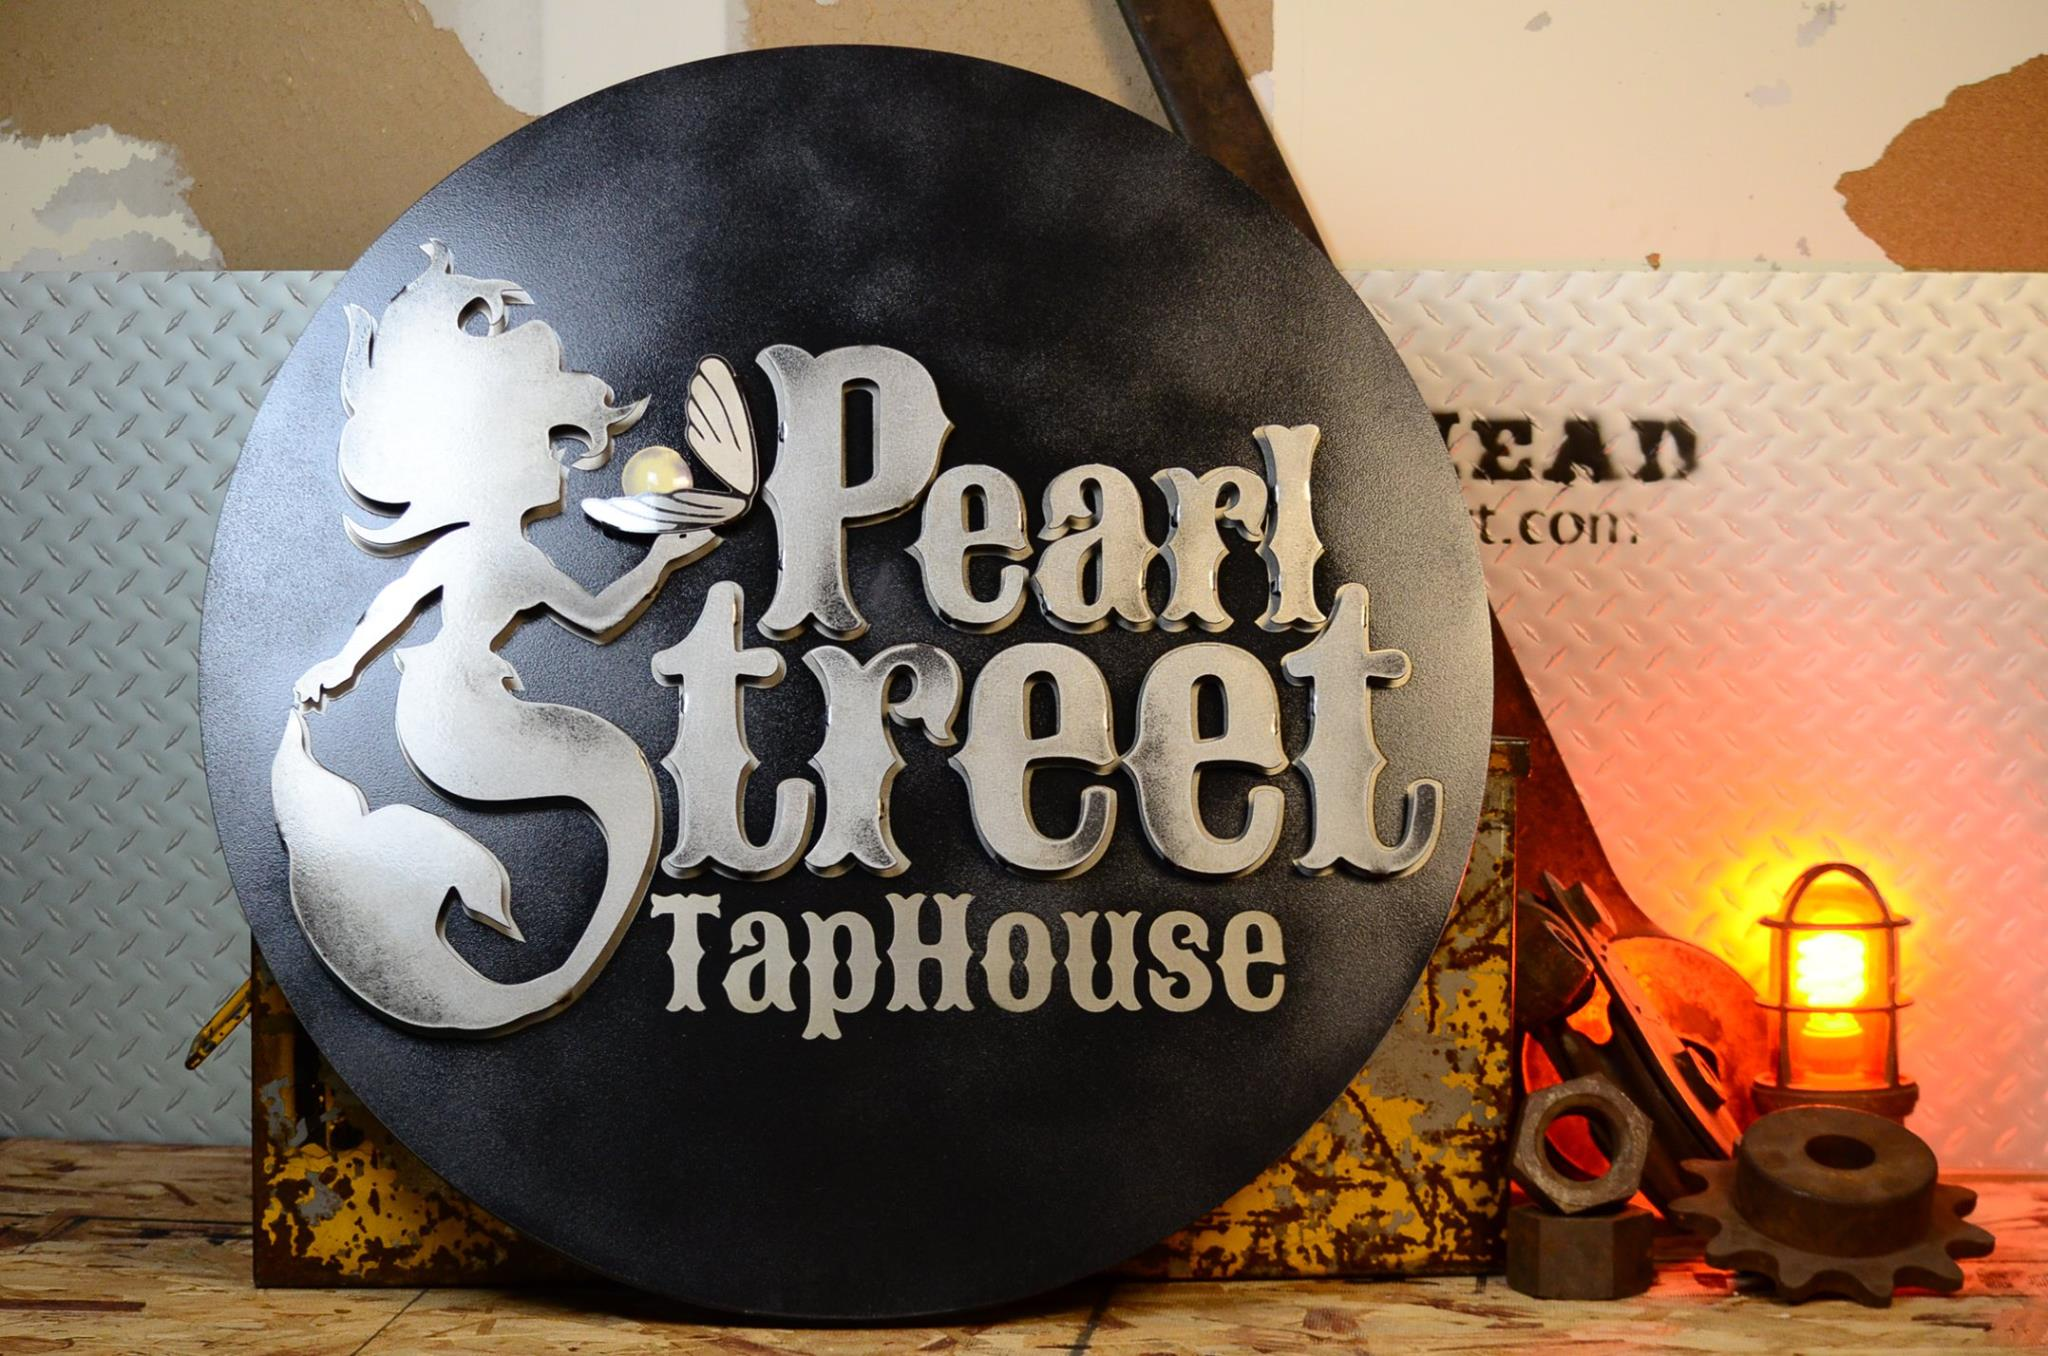 Pearl Street Taphouse sign